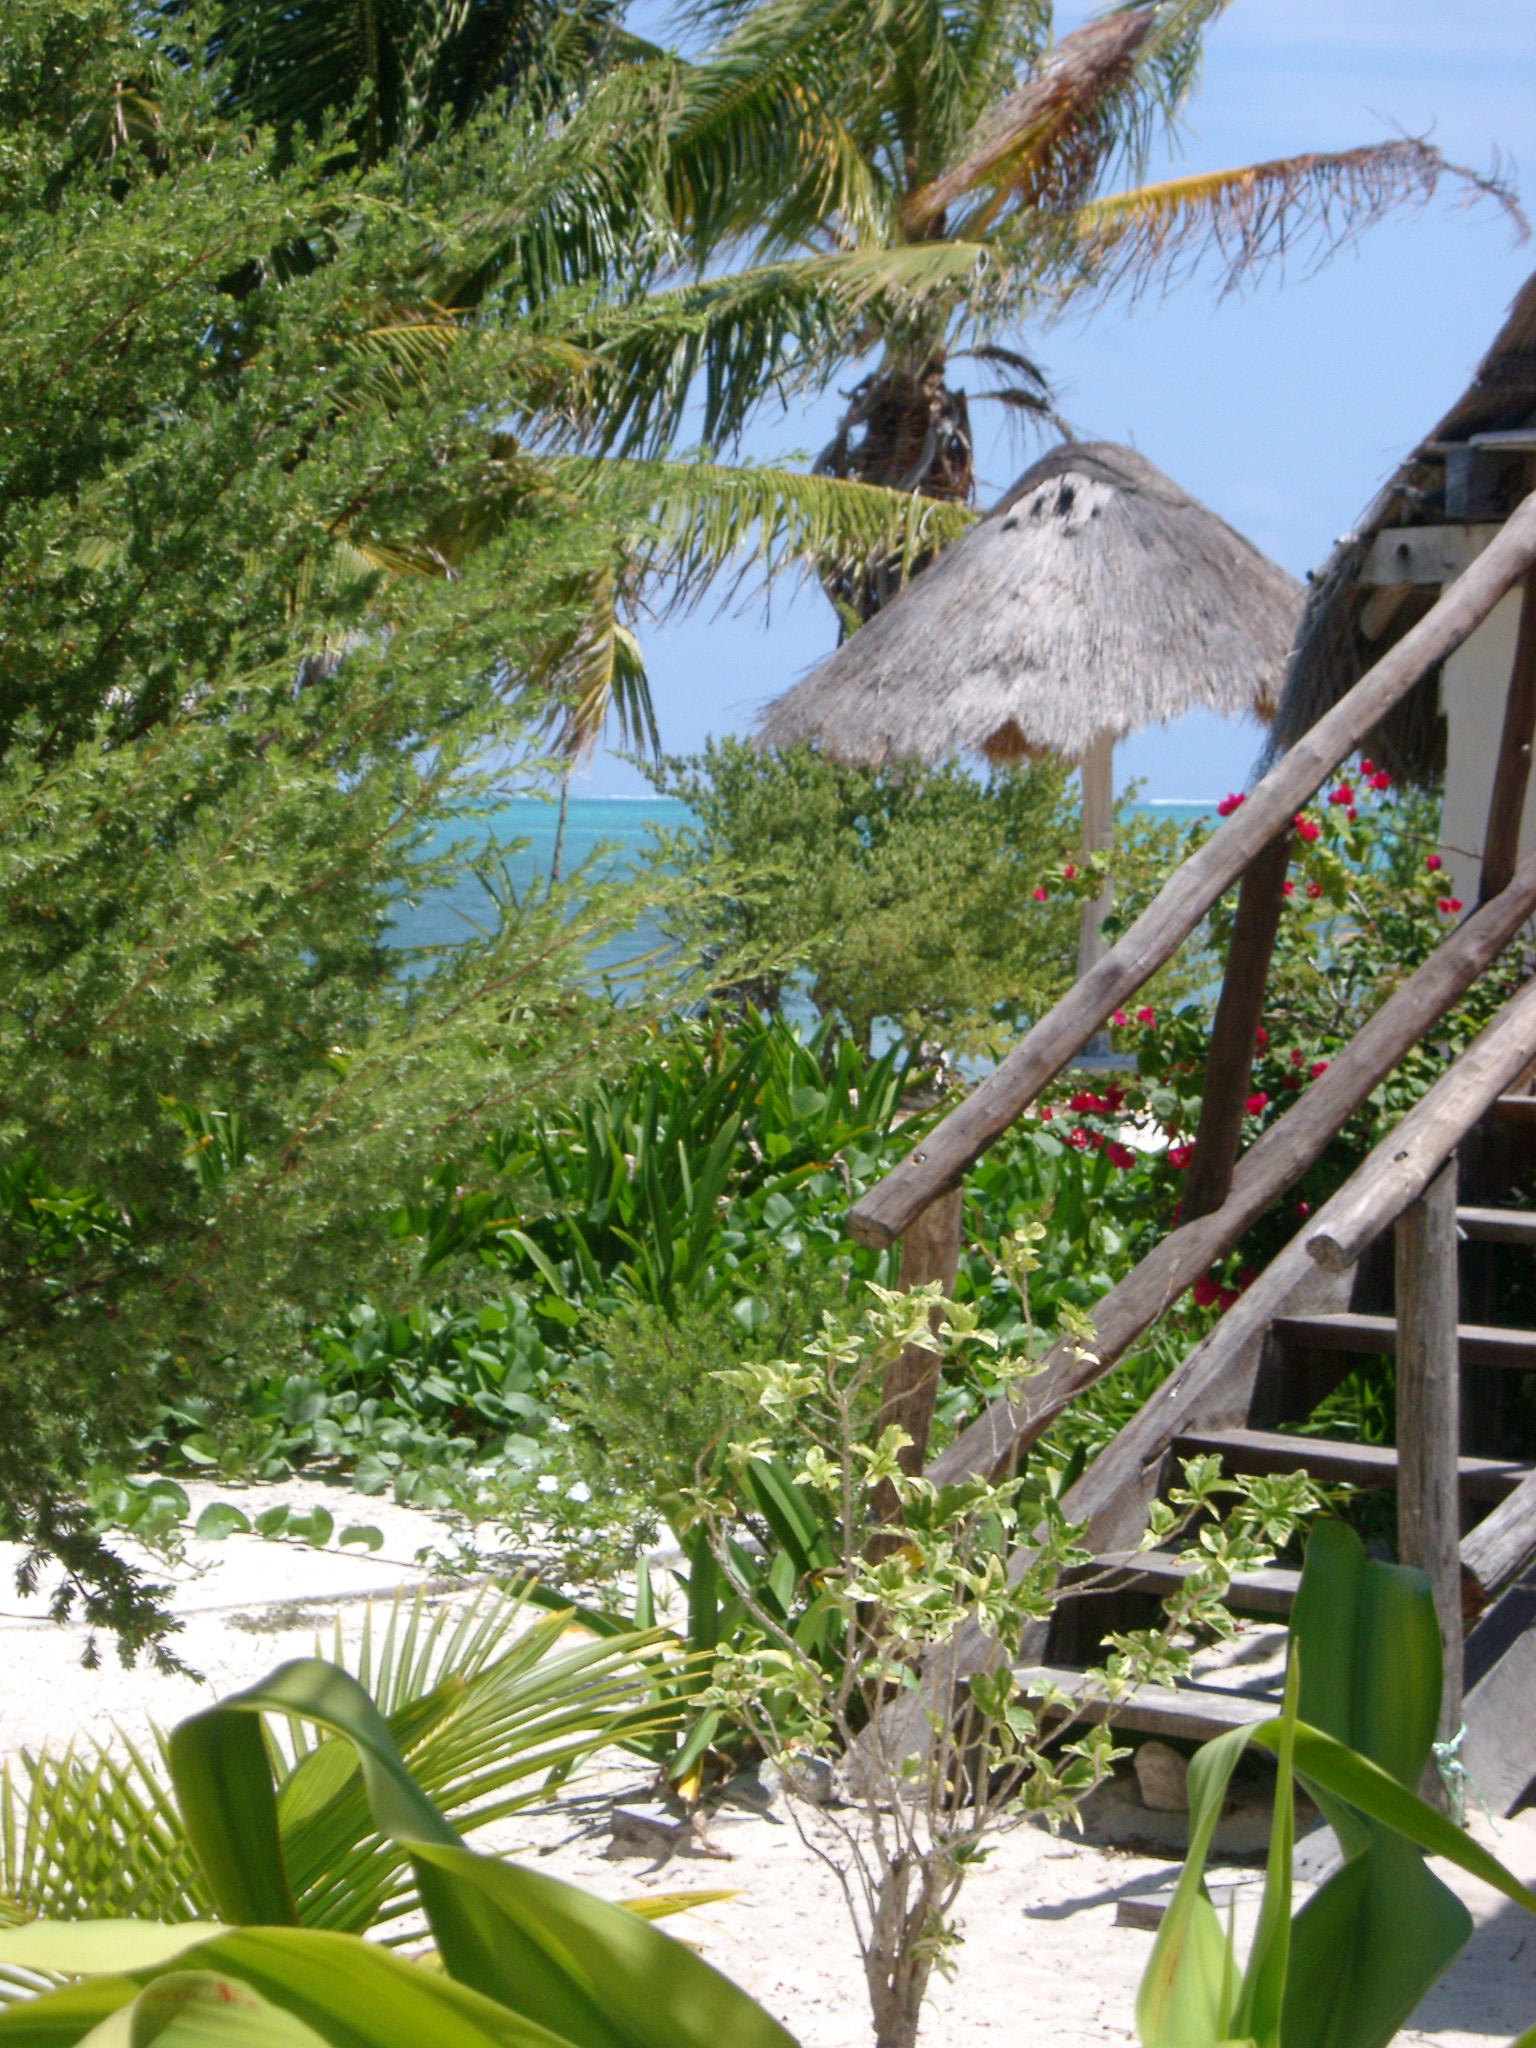 Flight of wooden steps leading up to a beachfront cabana in Mexico with tropical palm trees and a thatched roof